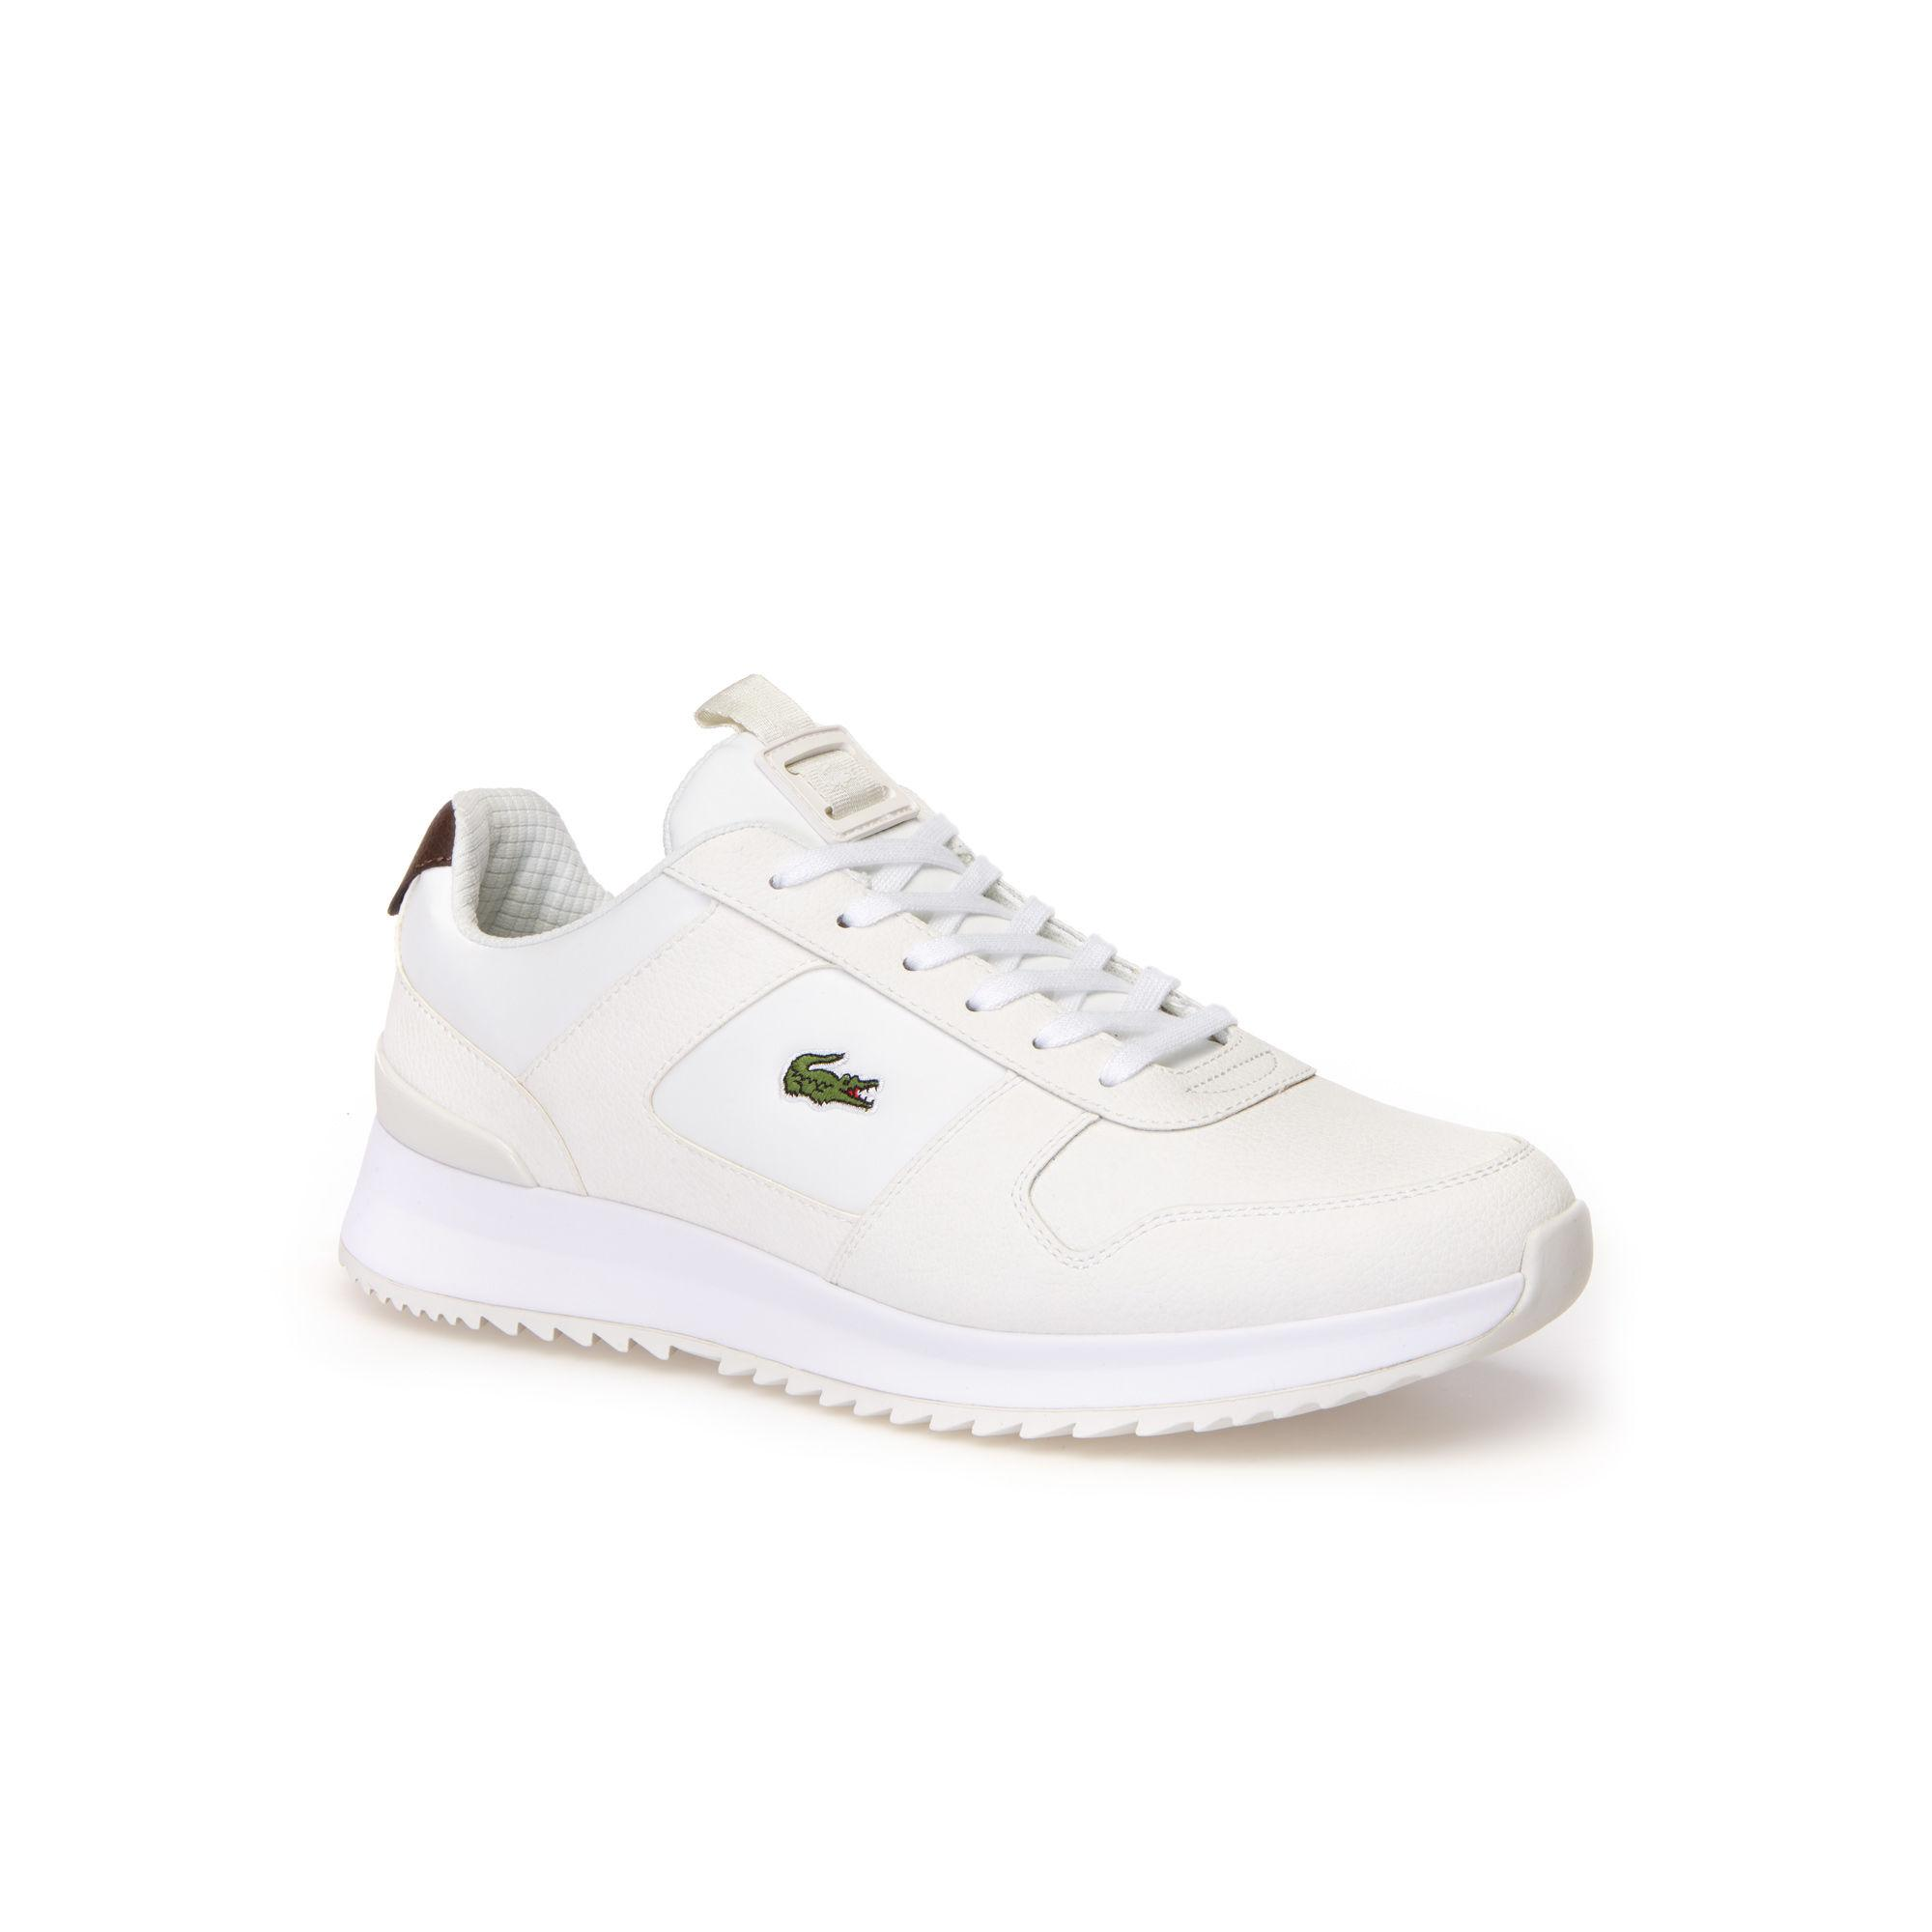 9010b4addf2d8 Lyst - Lacoste JOGGEUR 2.0 Leather Trainers in White for Men